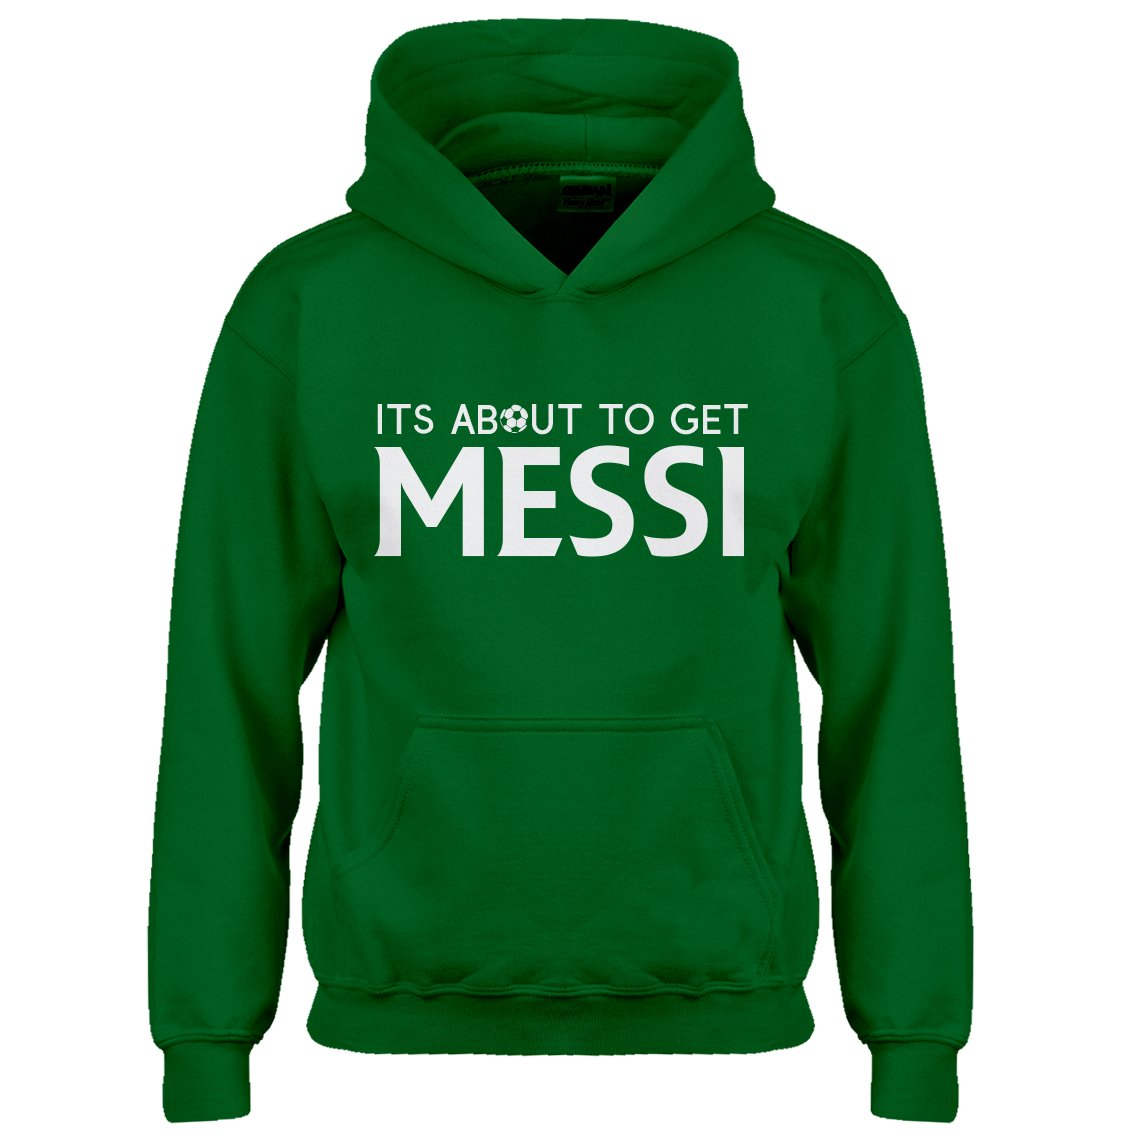 Indica Plateau Youth Its About to Get Messi Kids Hoodie 4200-Z